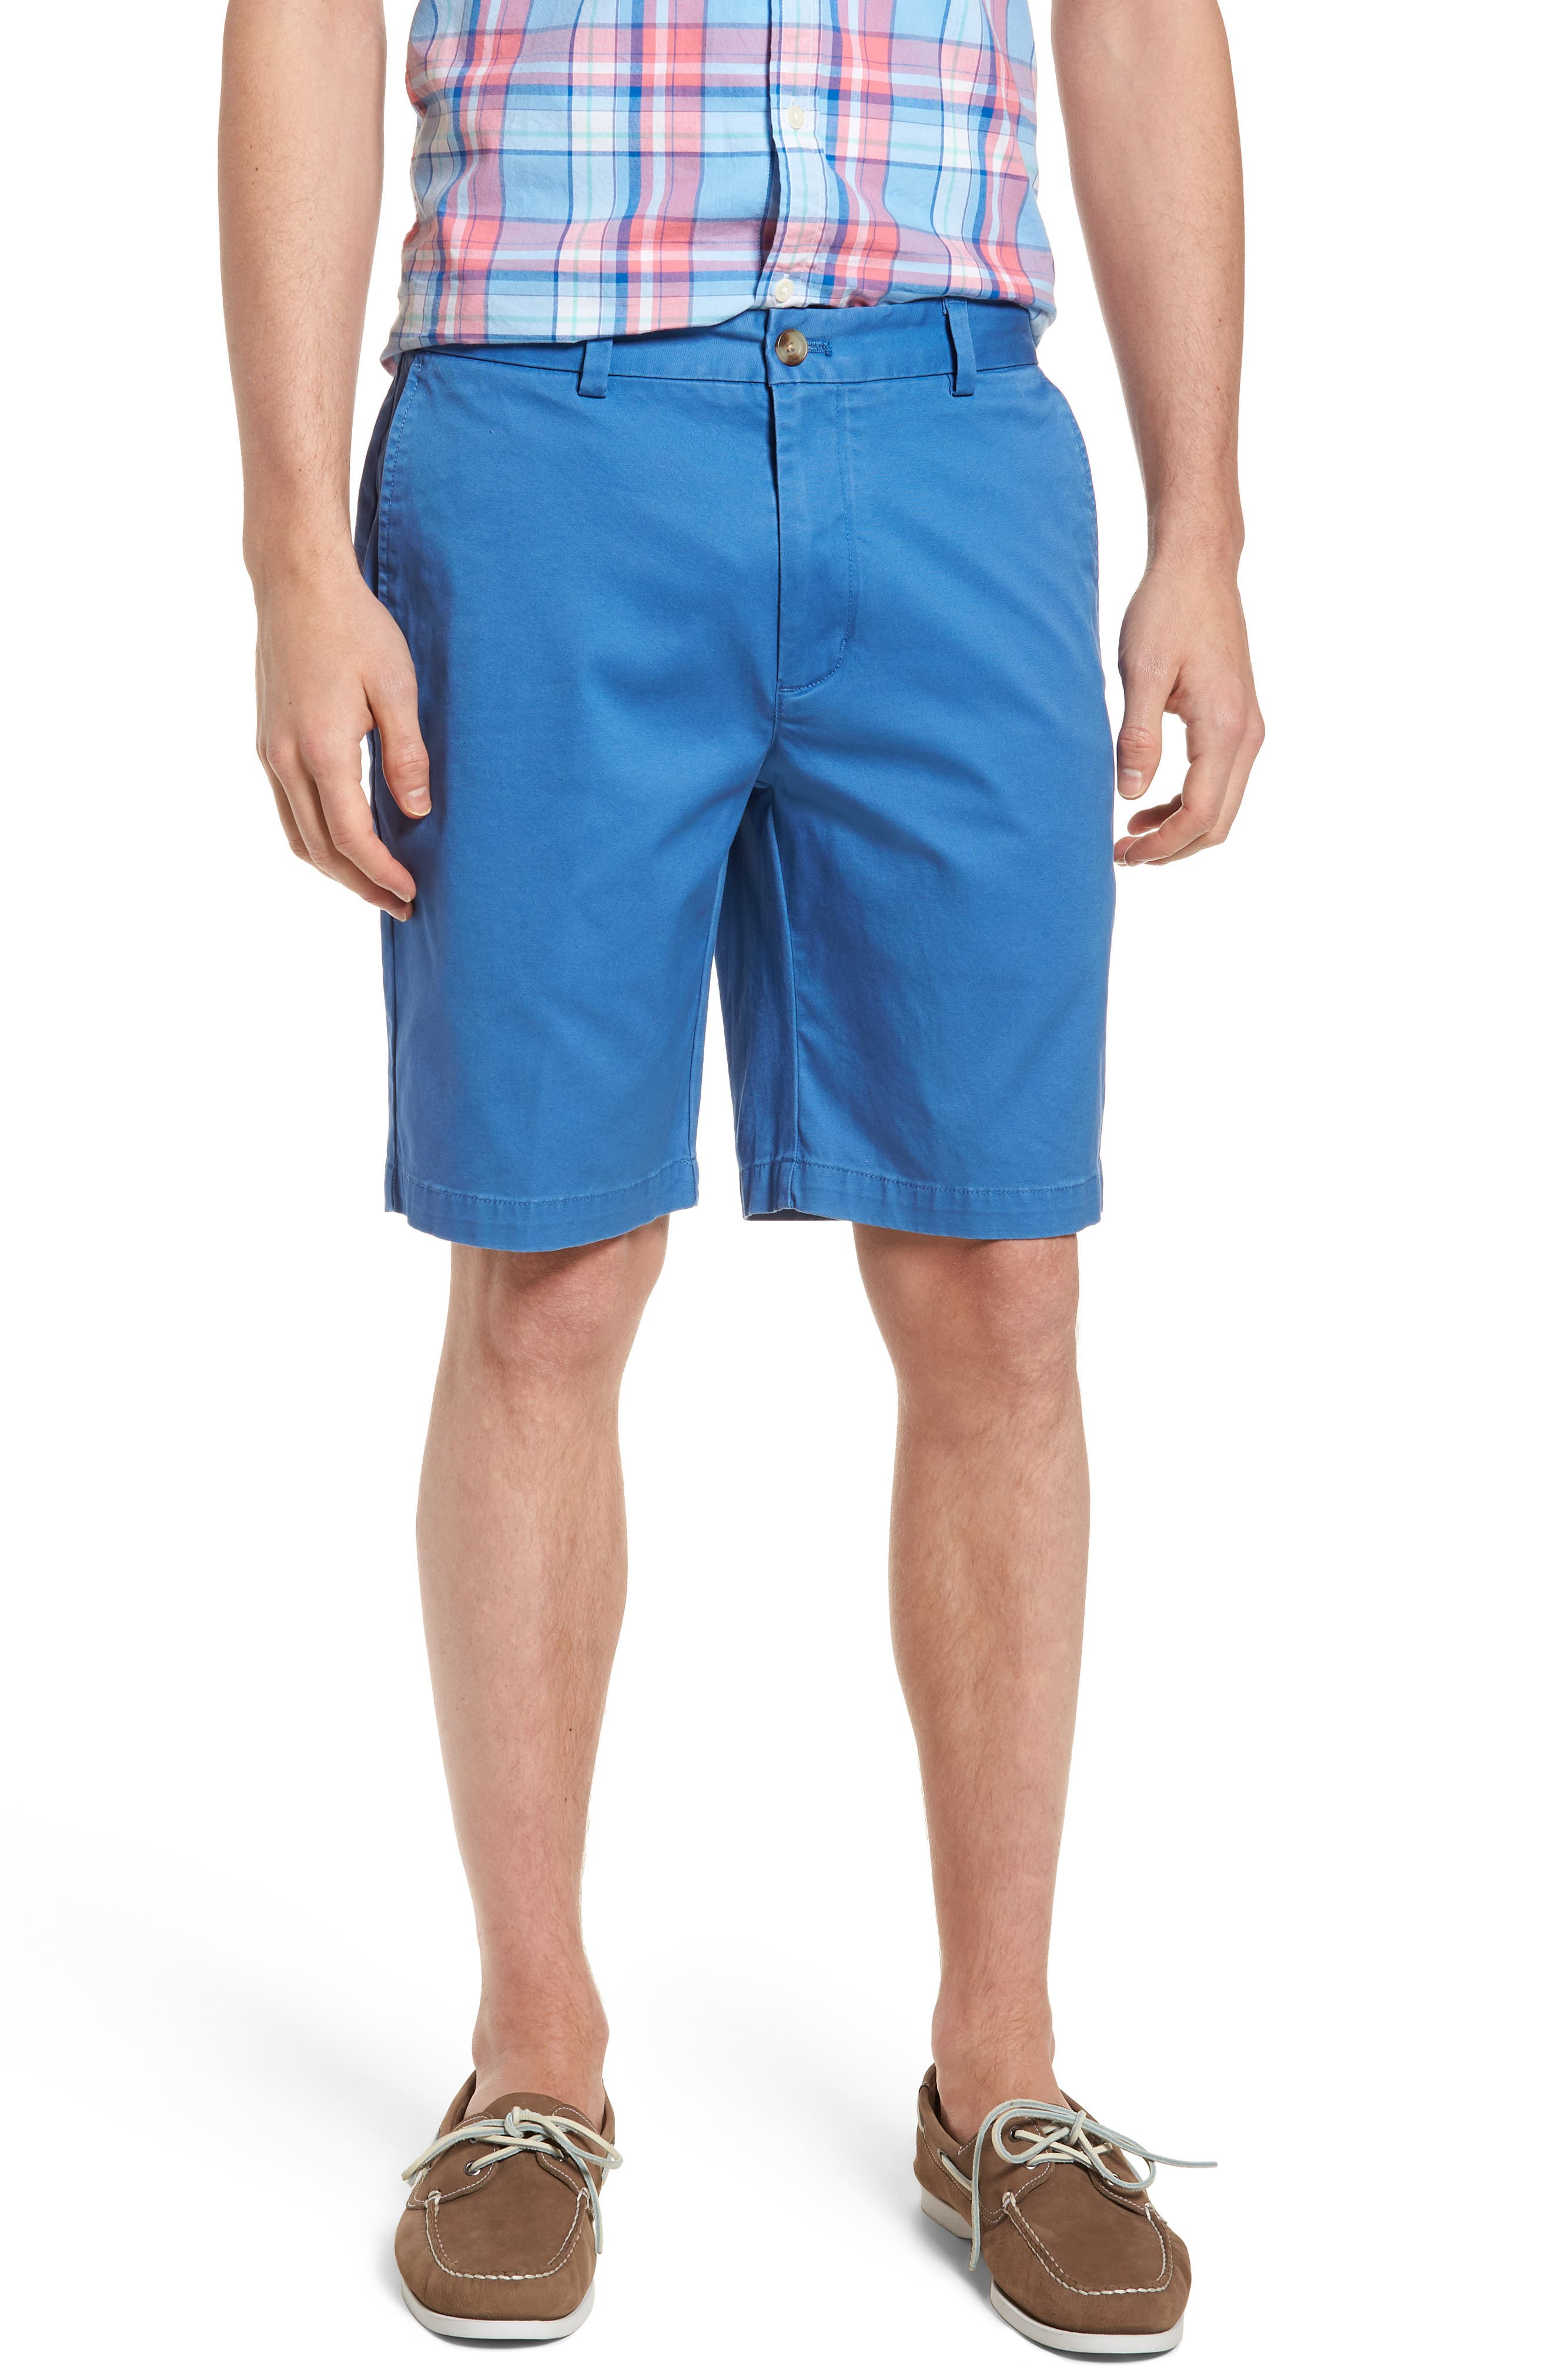 9 Inch Stretch Breaker Shorts,                             Main thumbnail 8, color,